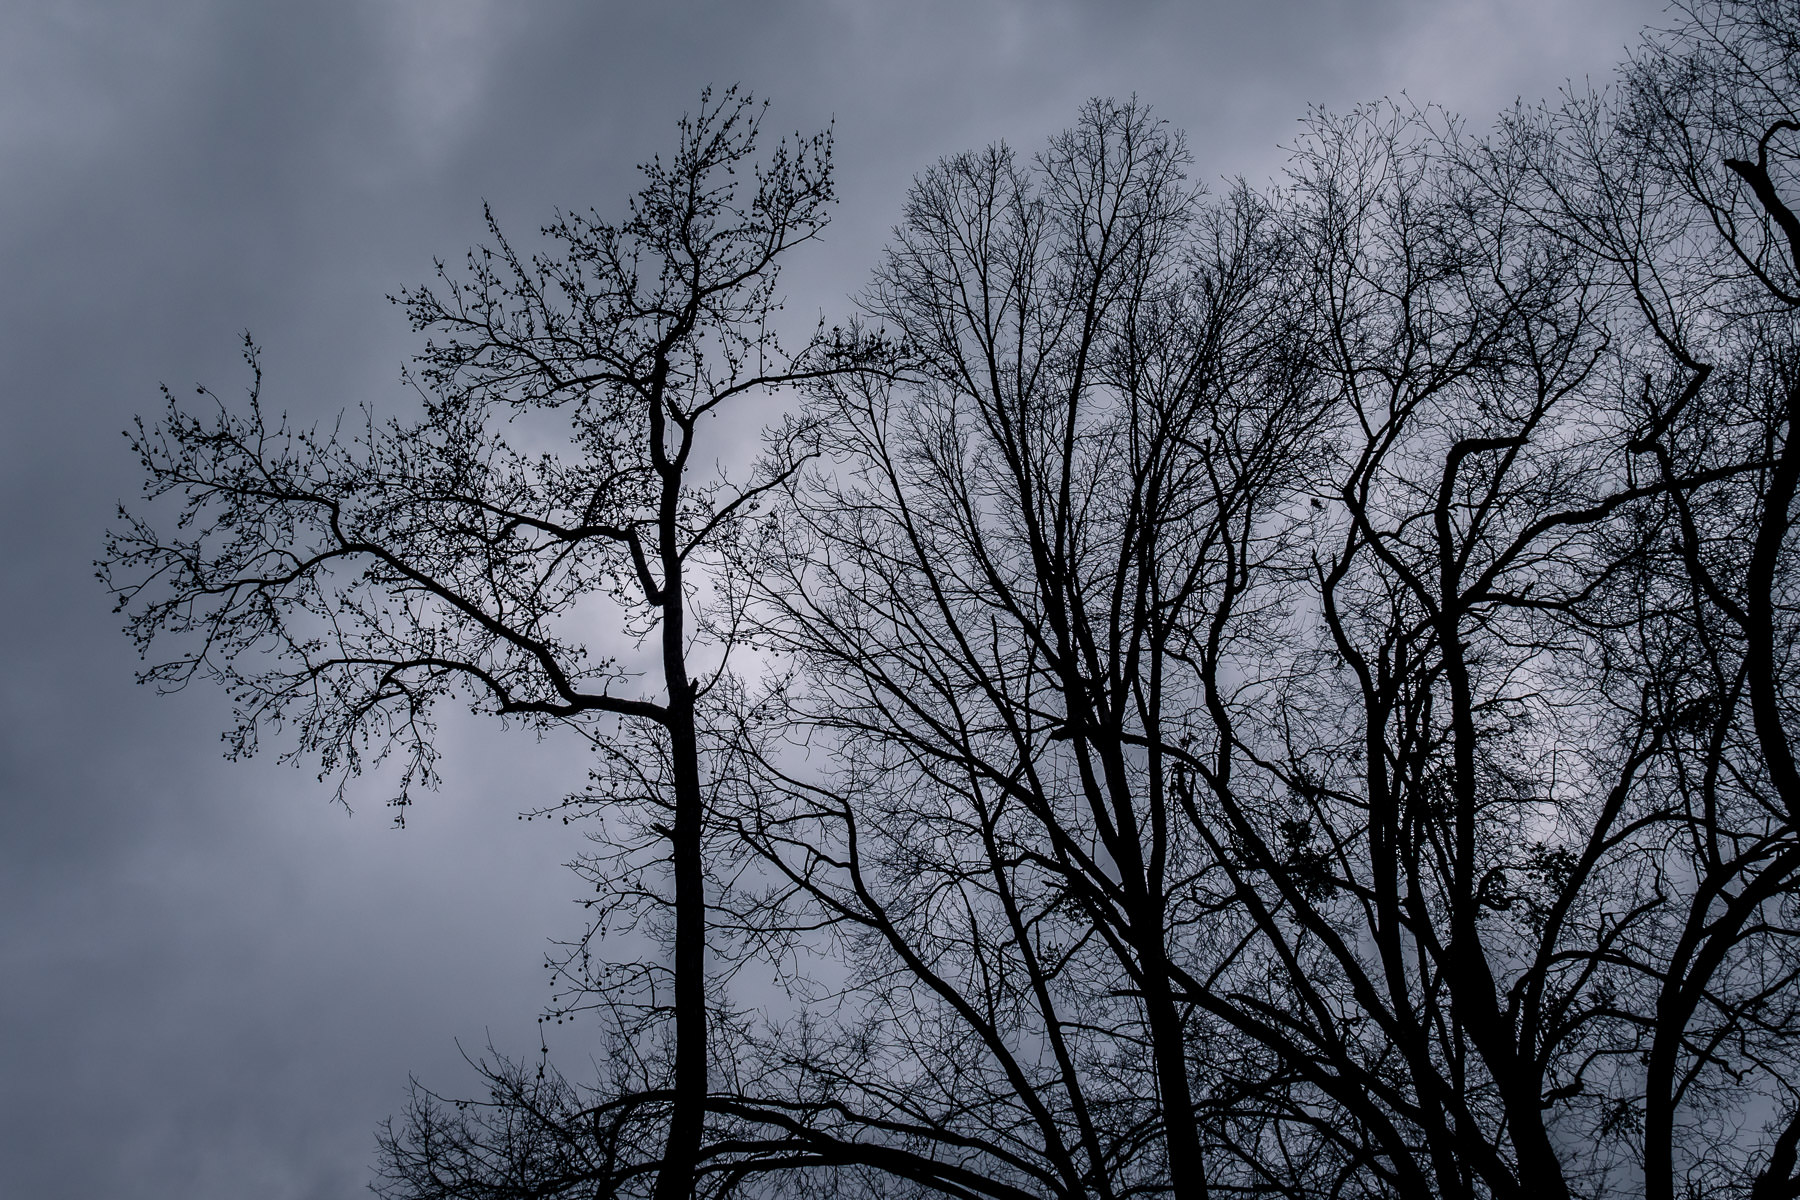 Trees reach into the cloudy, overcast sky on a cold winter day in Tyler, Texas.